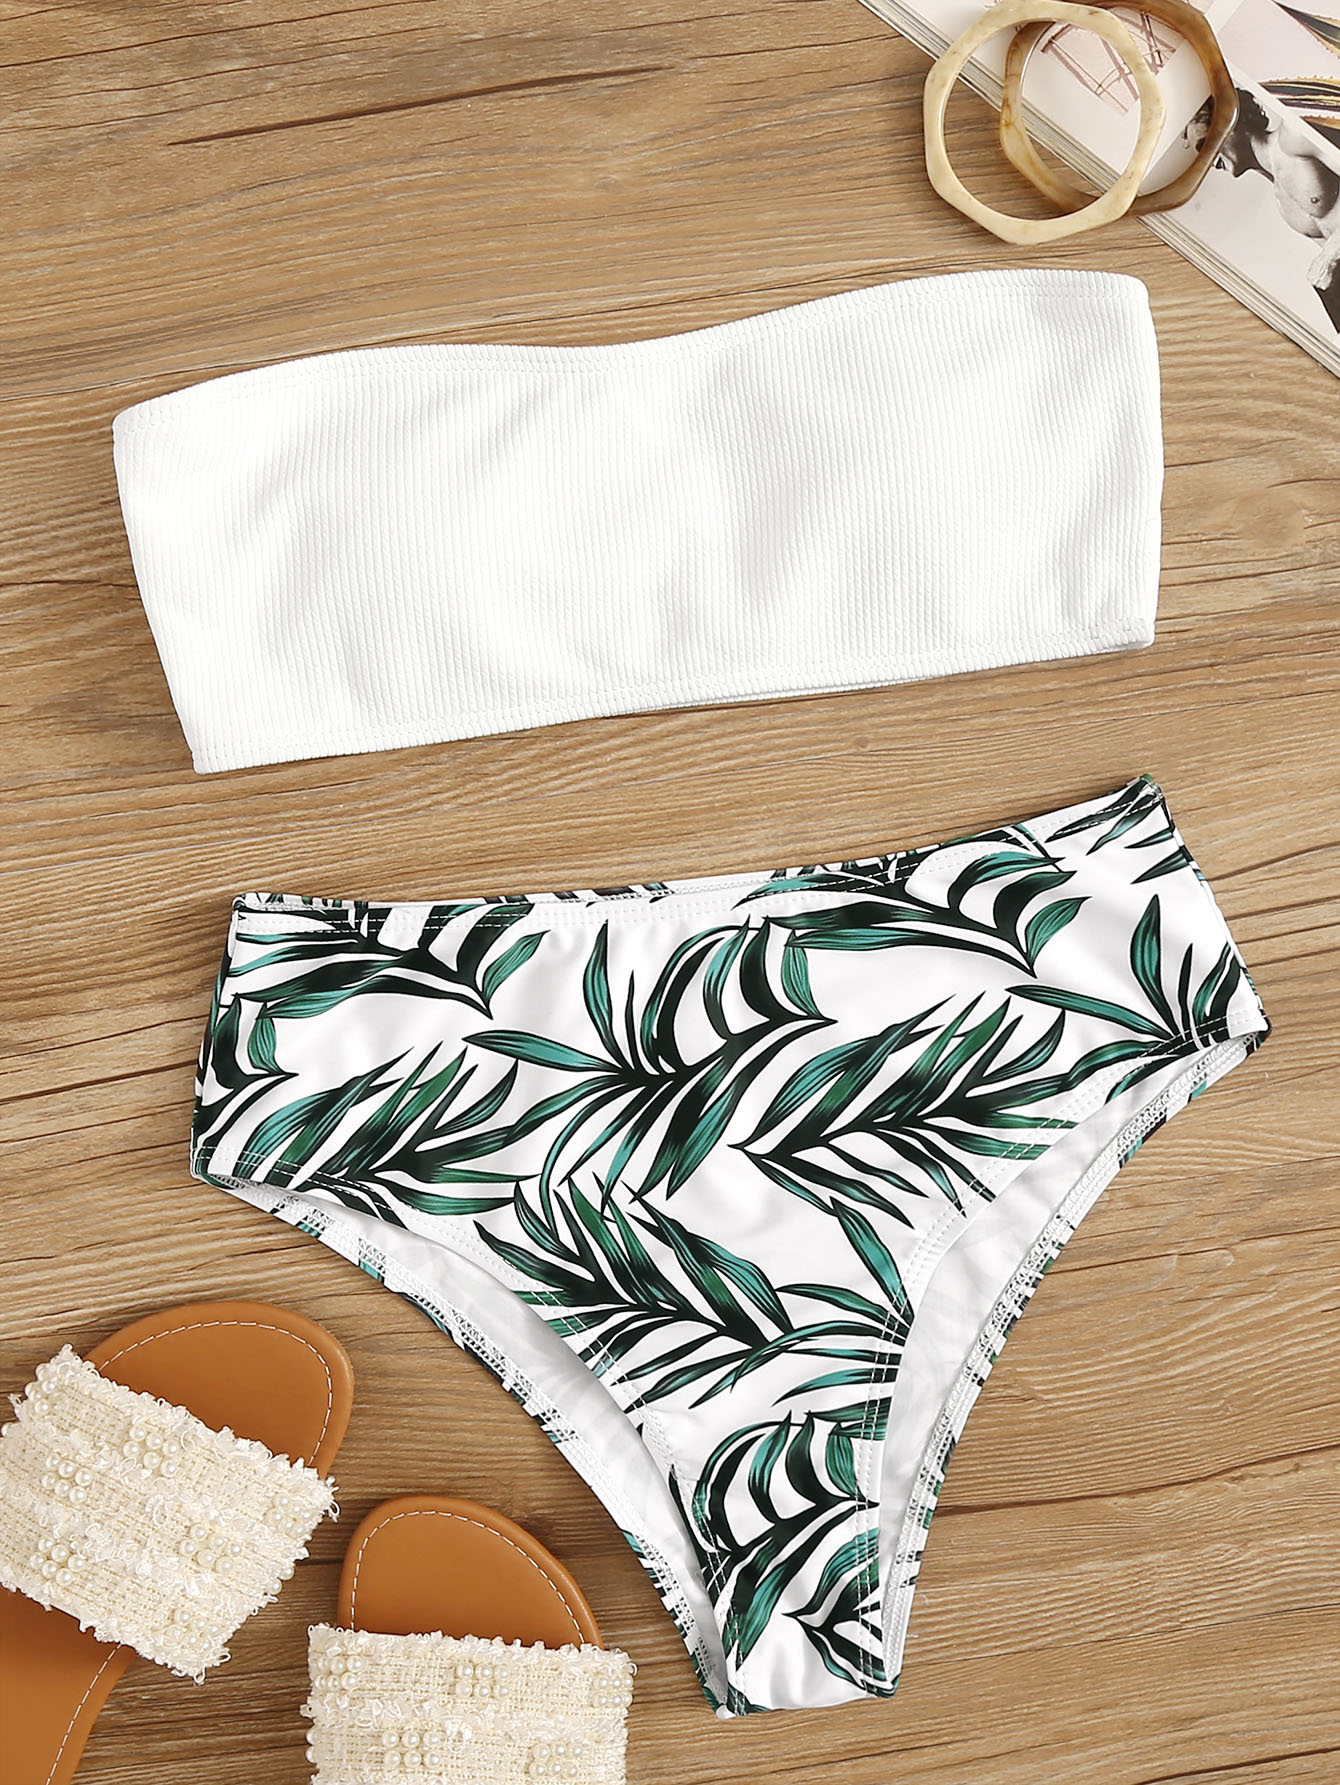 Special 129576 Ztr242 Hh396 Leaf Print Wired Bikini Shorts Set Triumph Made